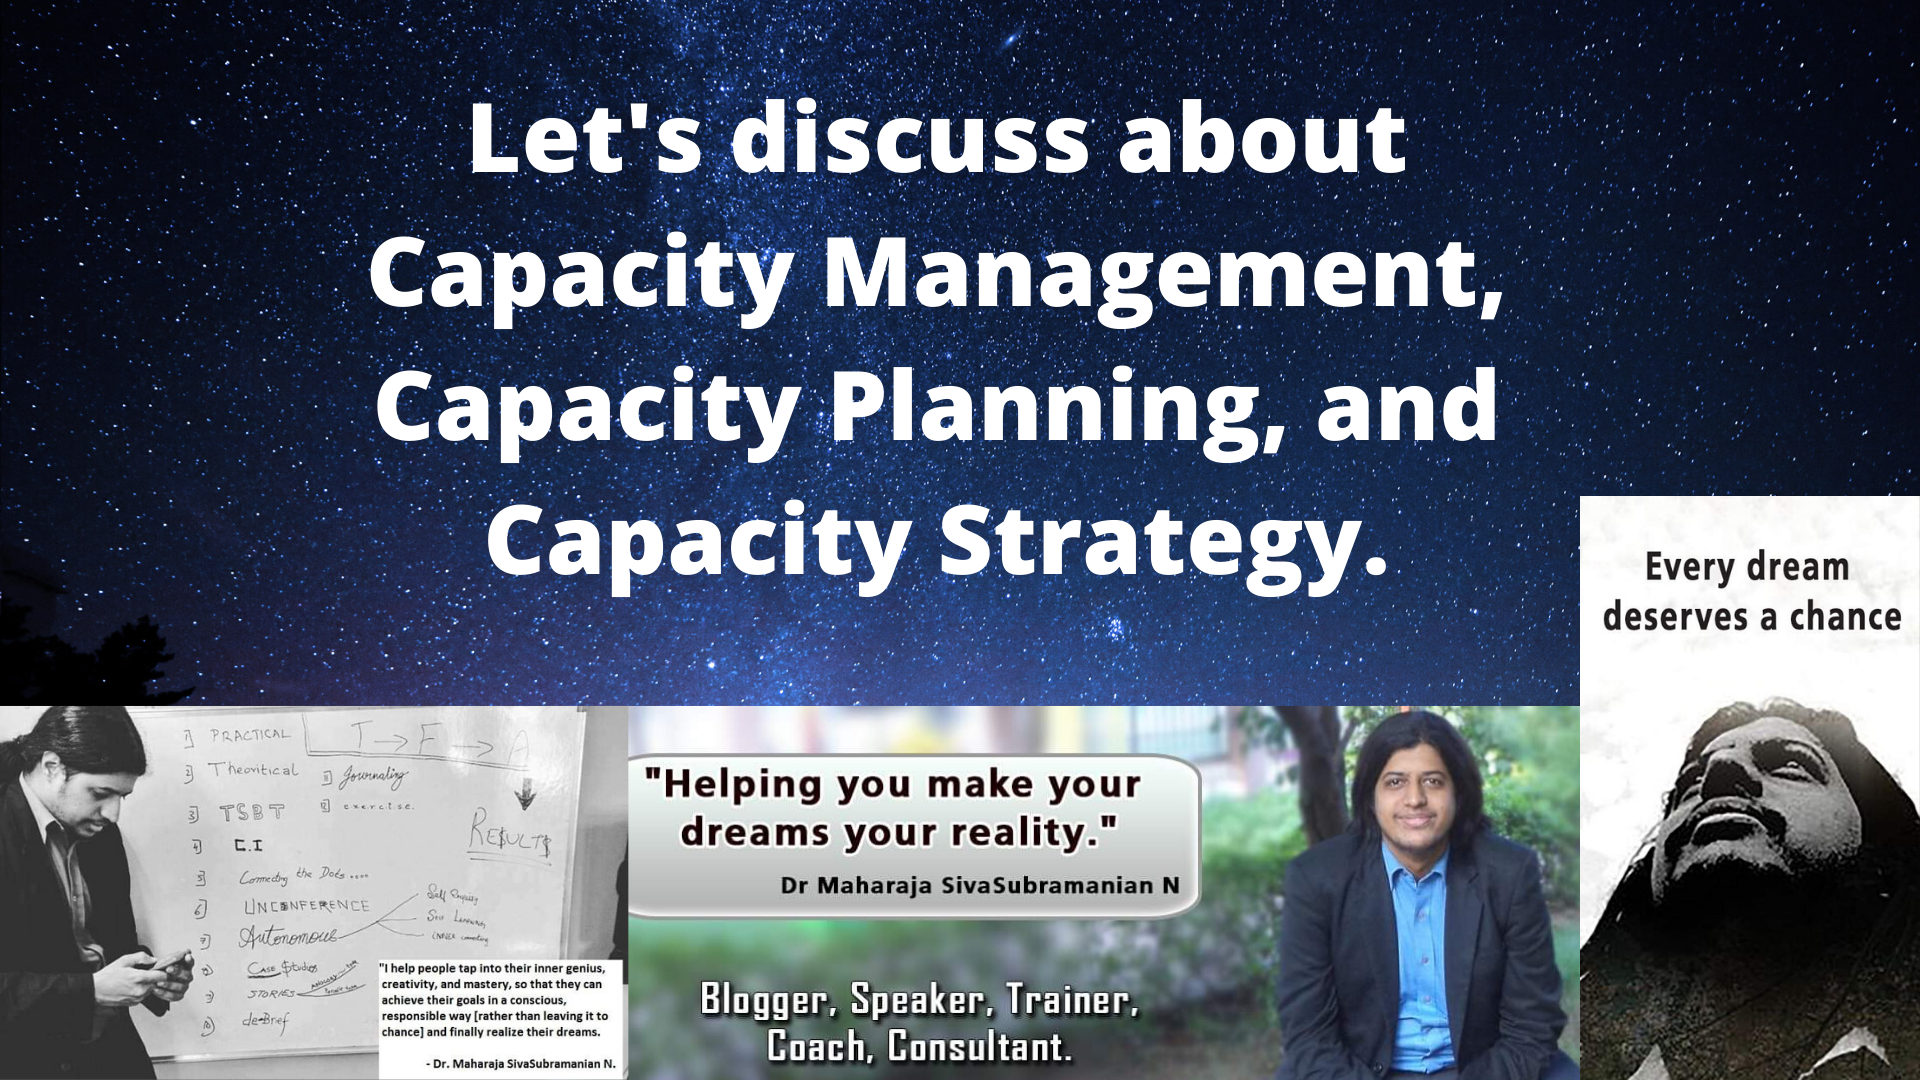 Let's discuss about Capacity Management, Capacity Planning, and Capacity Strategy.